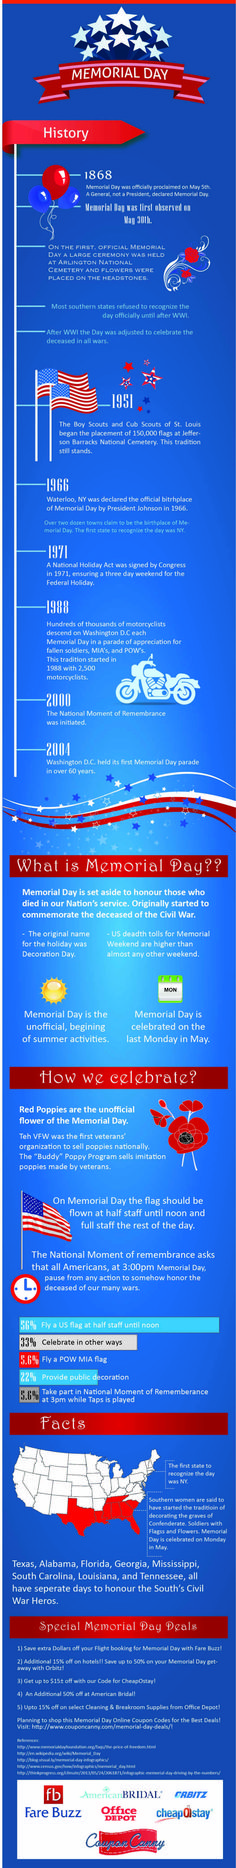 memorial day 2015 los angeles activities